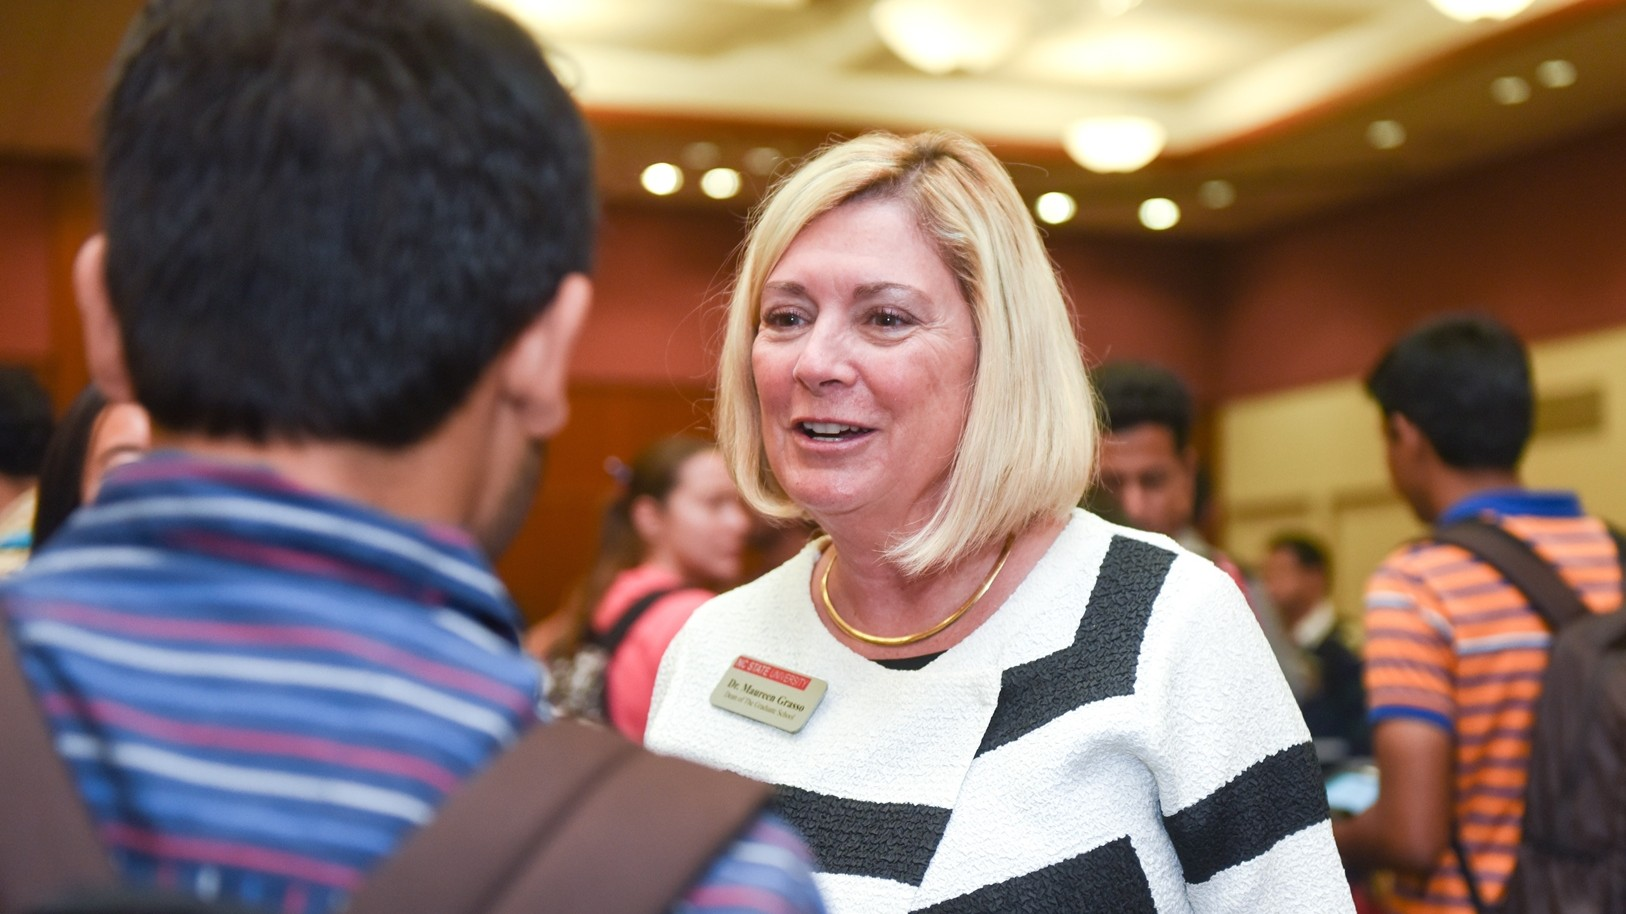 Maureen Grasso talks with student at orientation